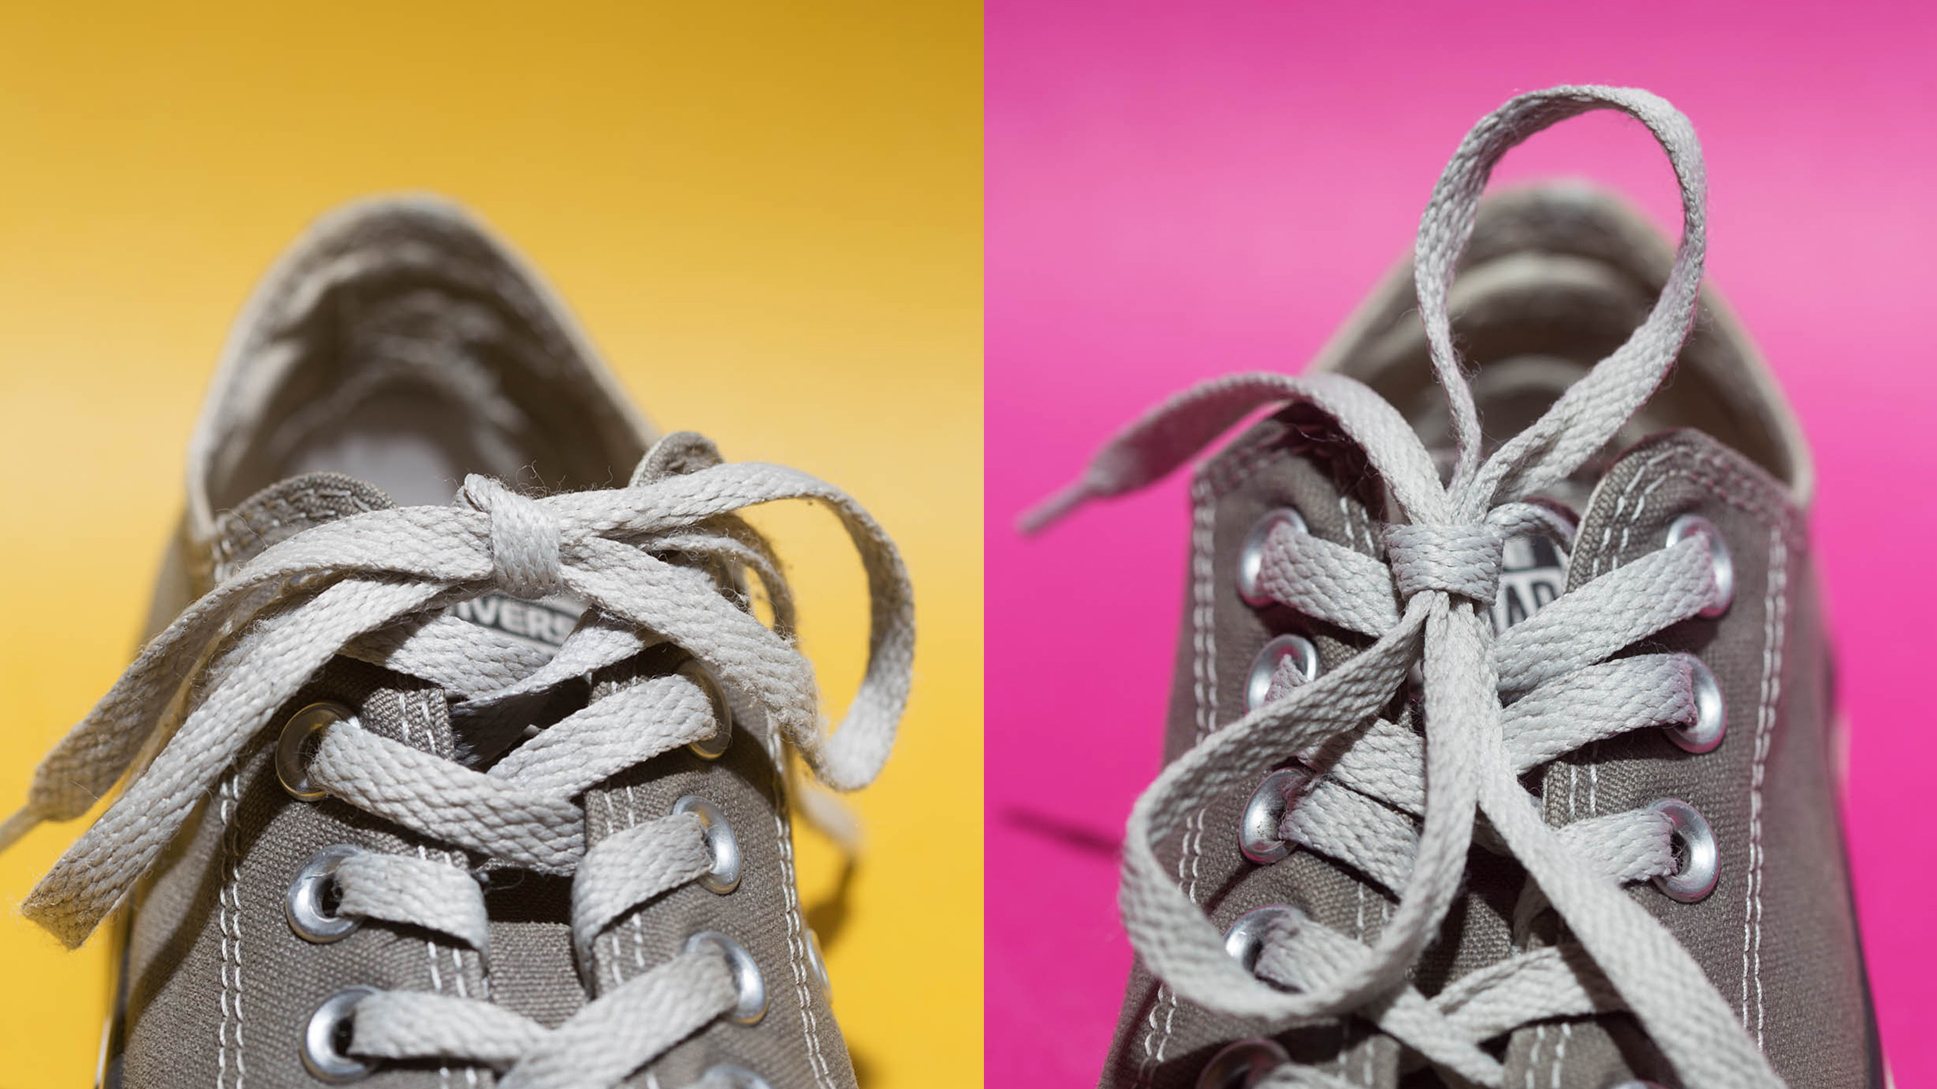 Keep your laces tied!